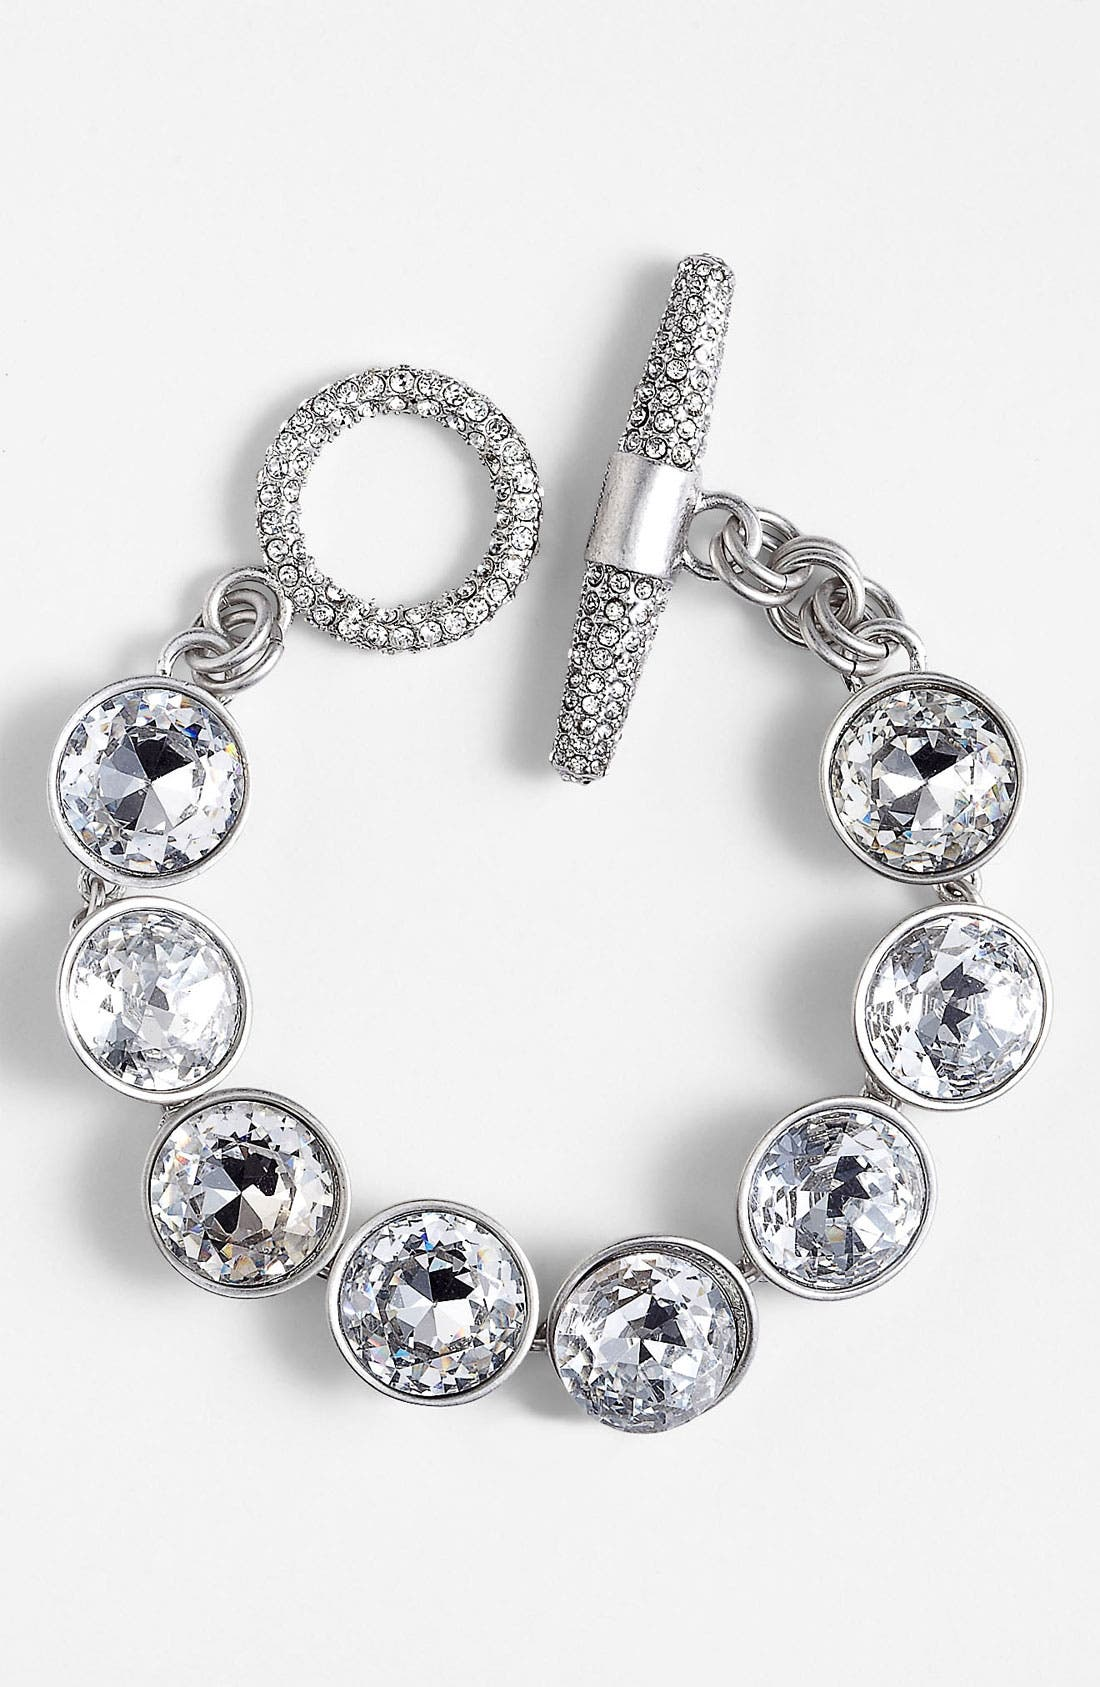 Main Image - Juicy Couture 'Glam Rocks' Station Bracelet